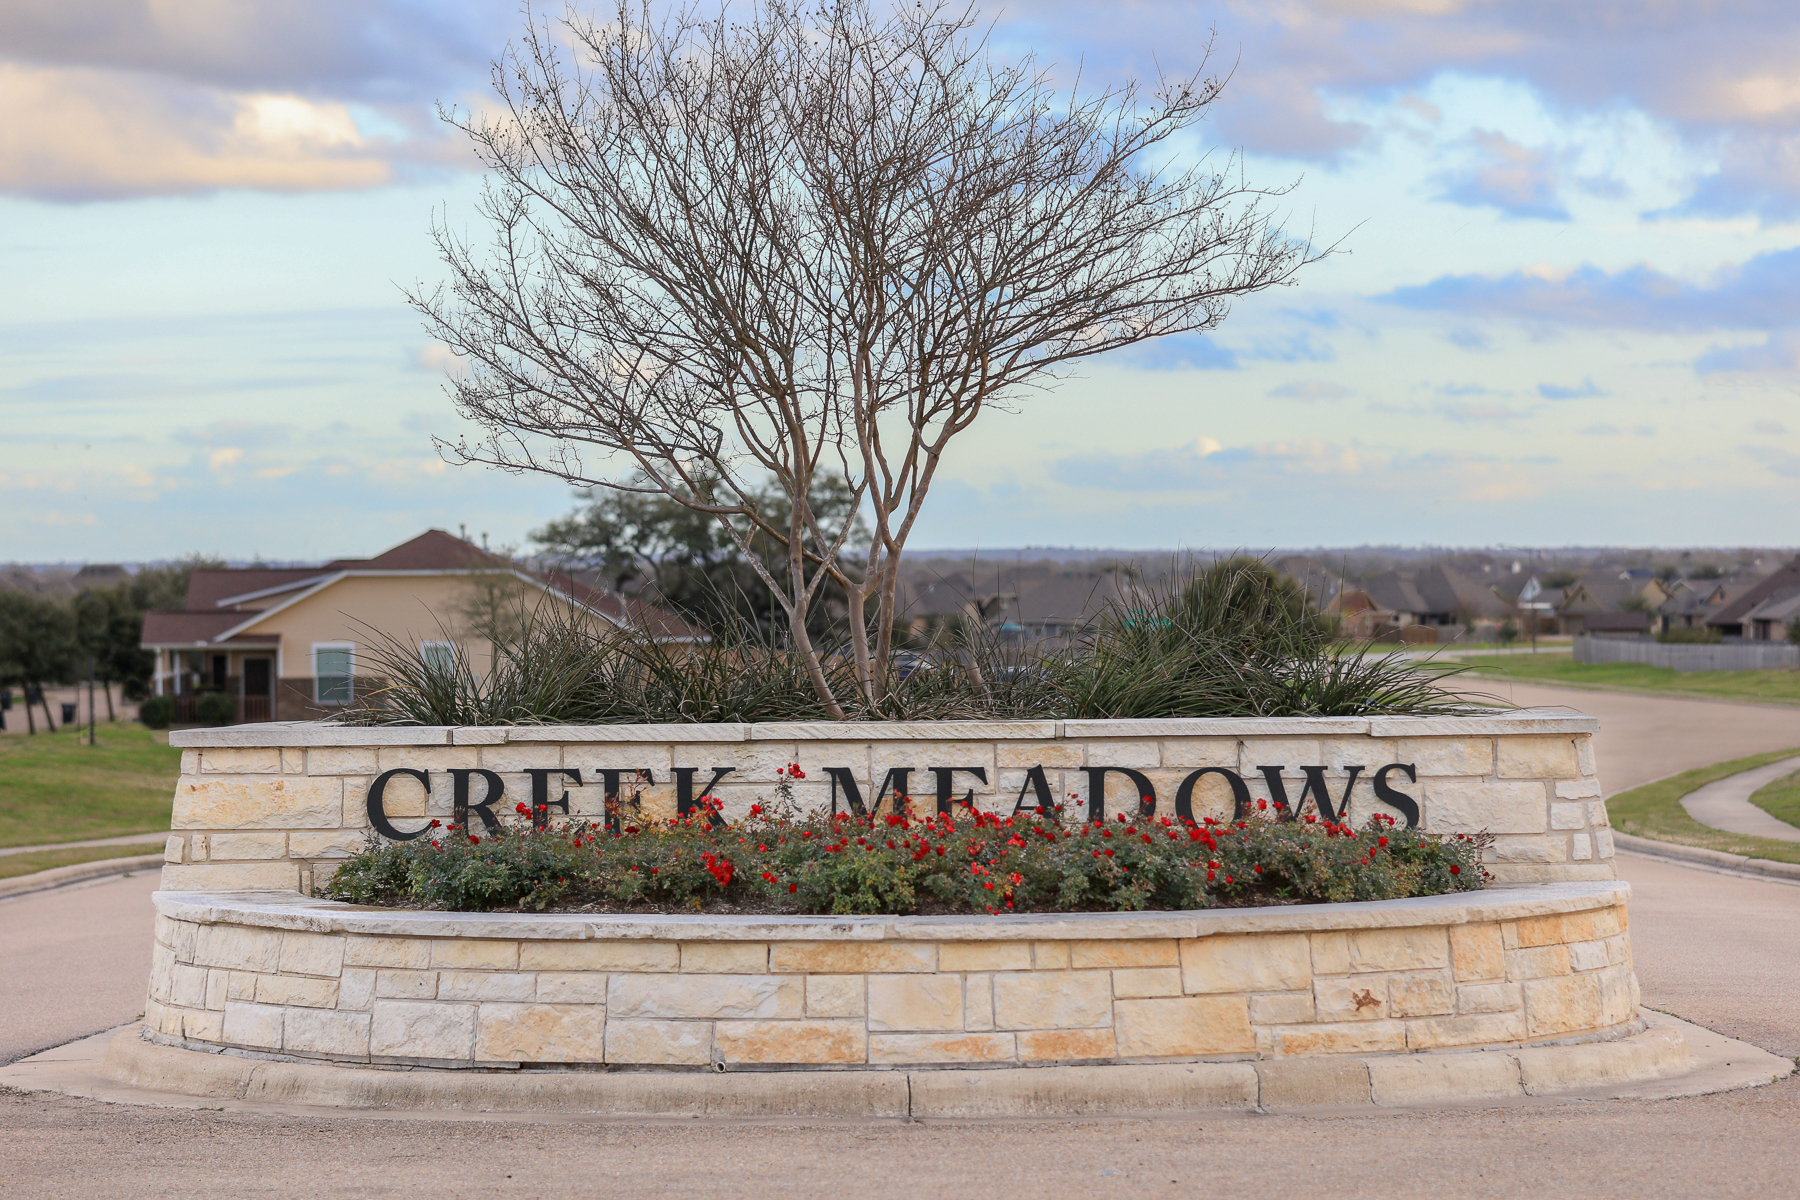 Creek Meadows